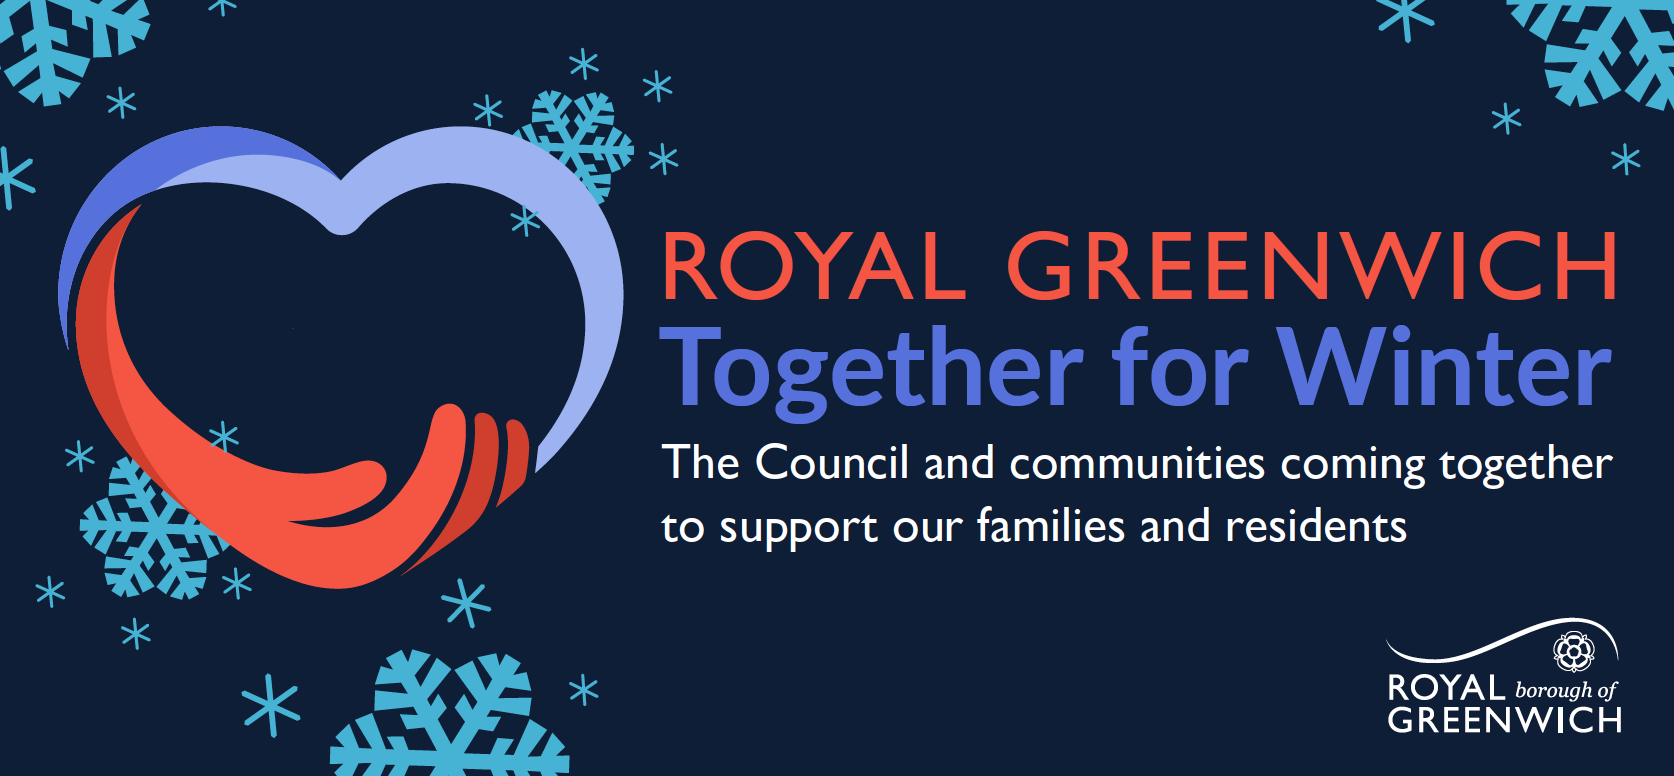 Royal Greenwich Together for Winter